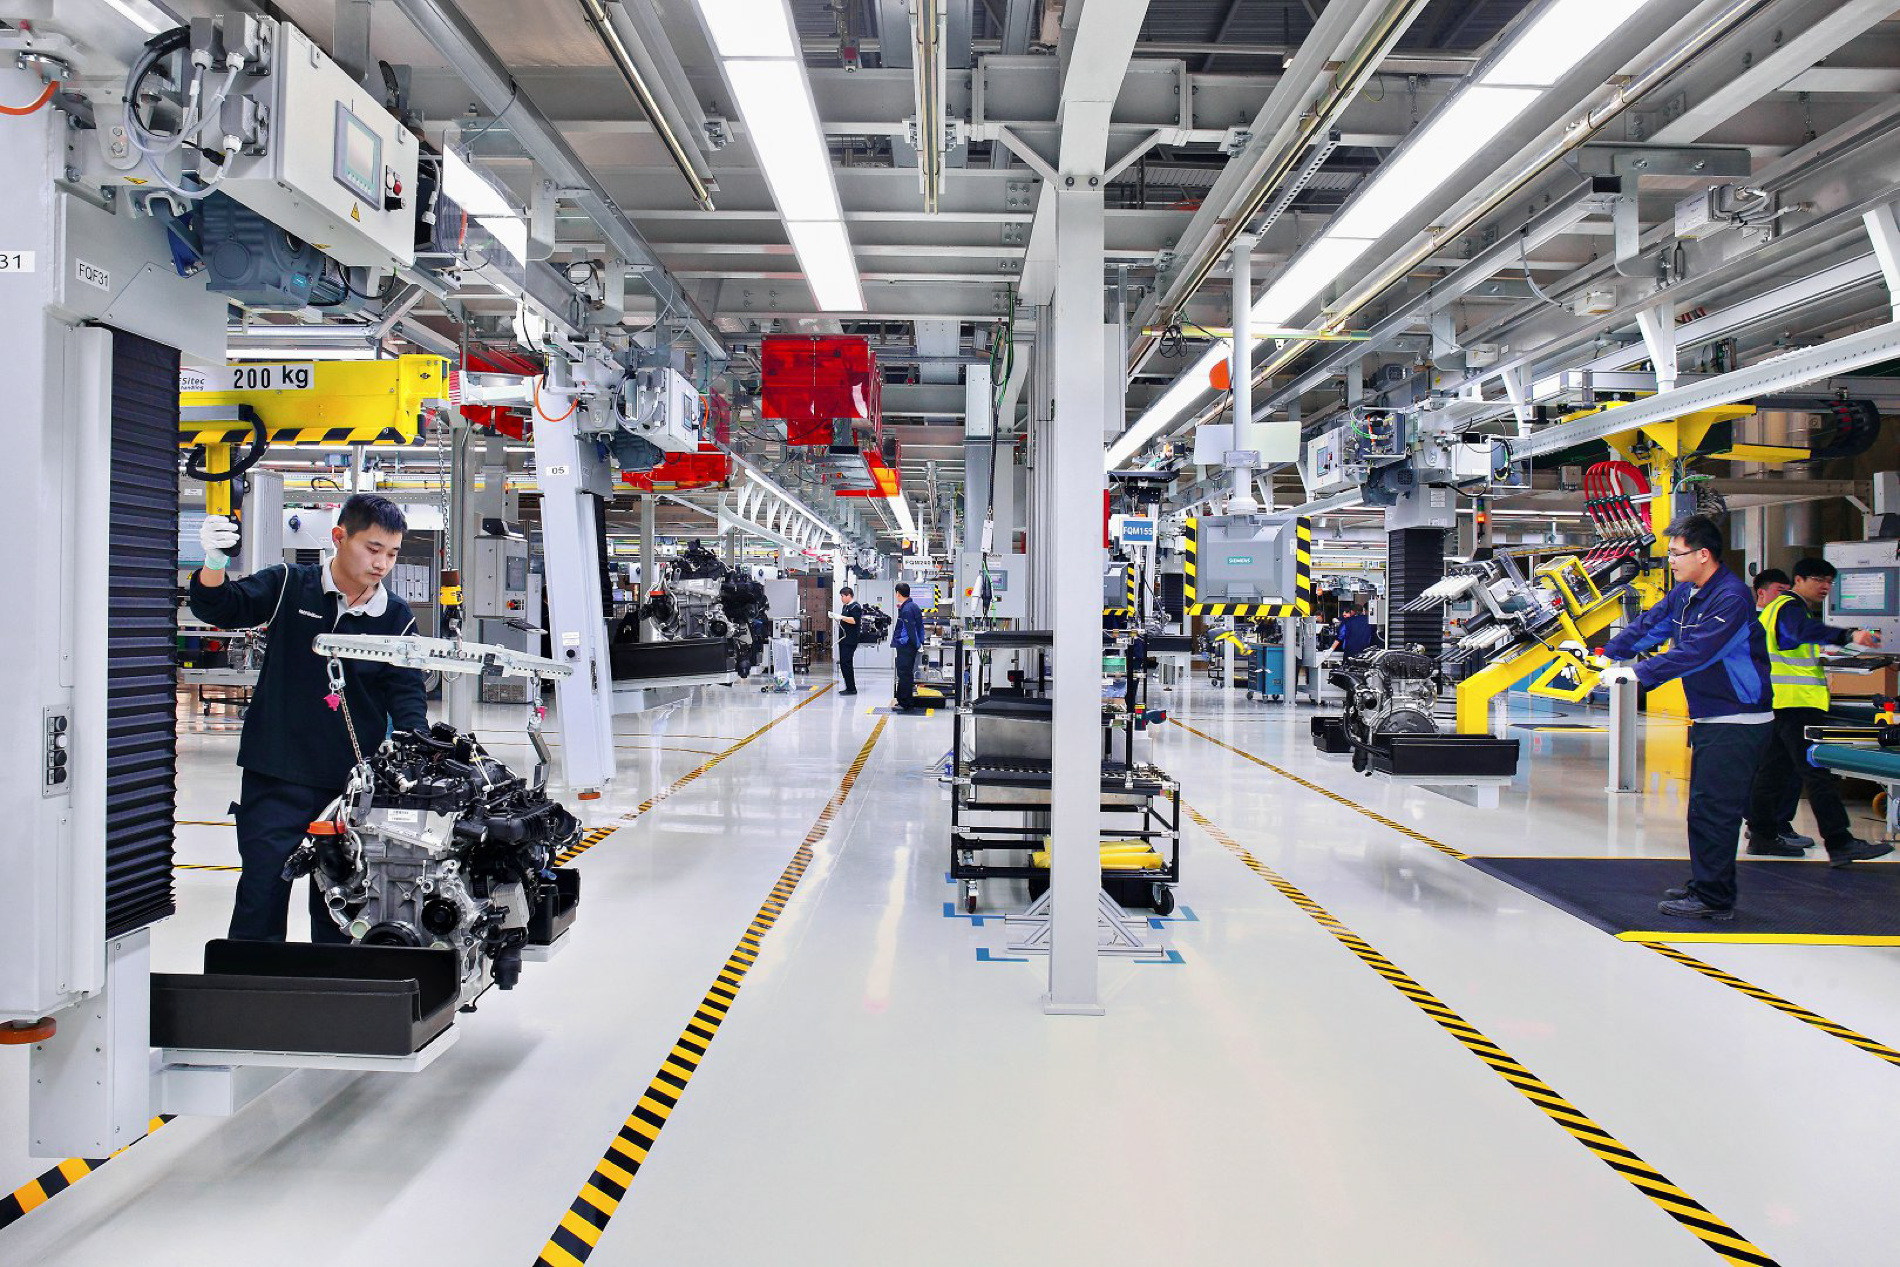 BMW Brilliance Automotive opens new engine plant with light metal foundry in China